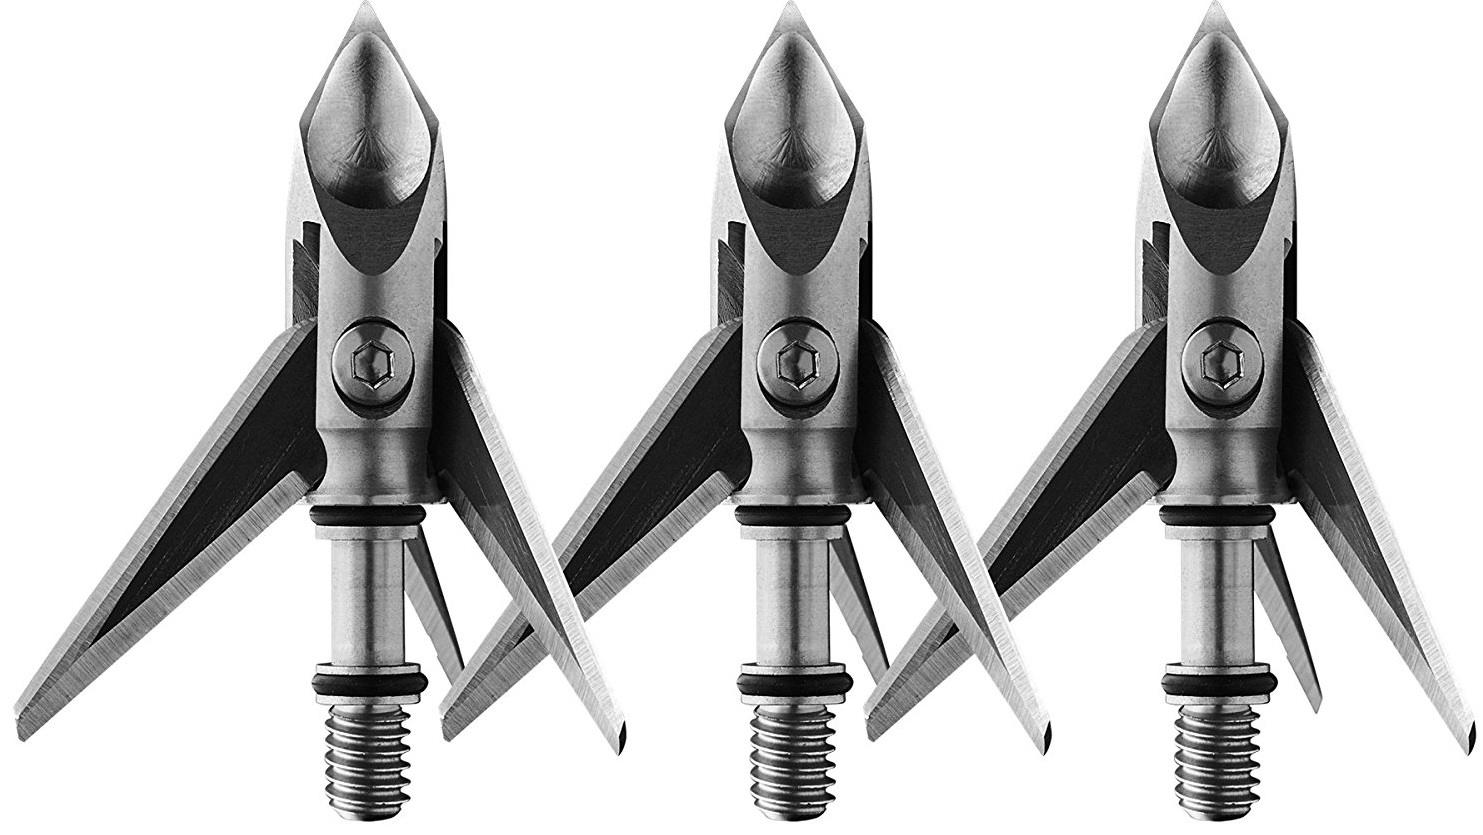 RAMCAT MECHANICAL BROADHEAD